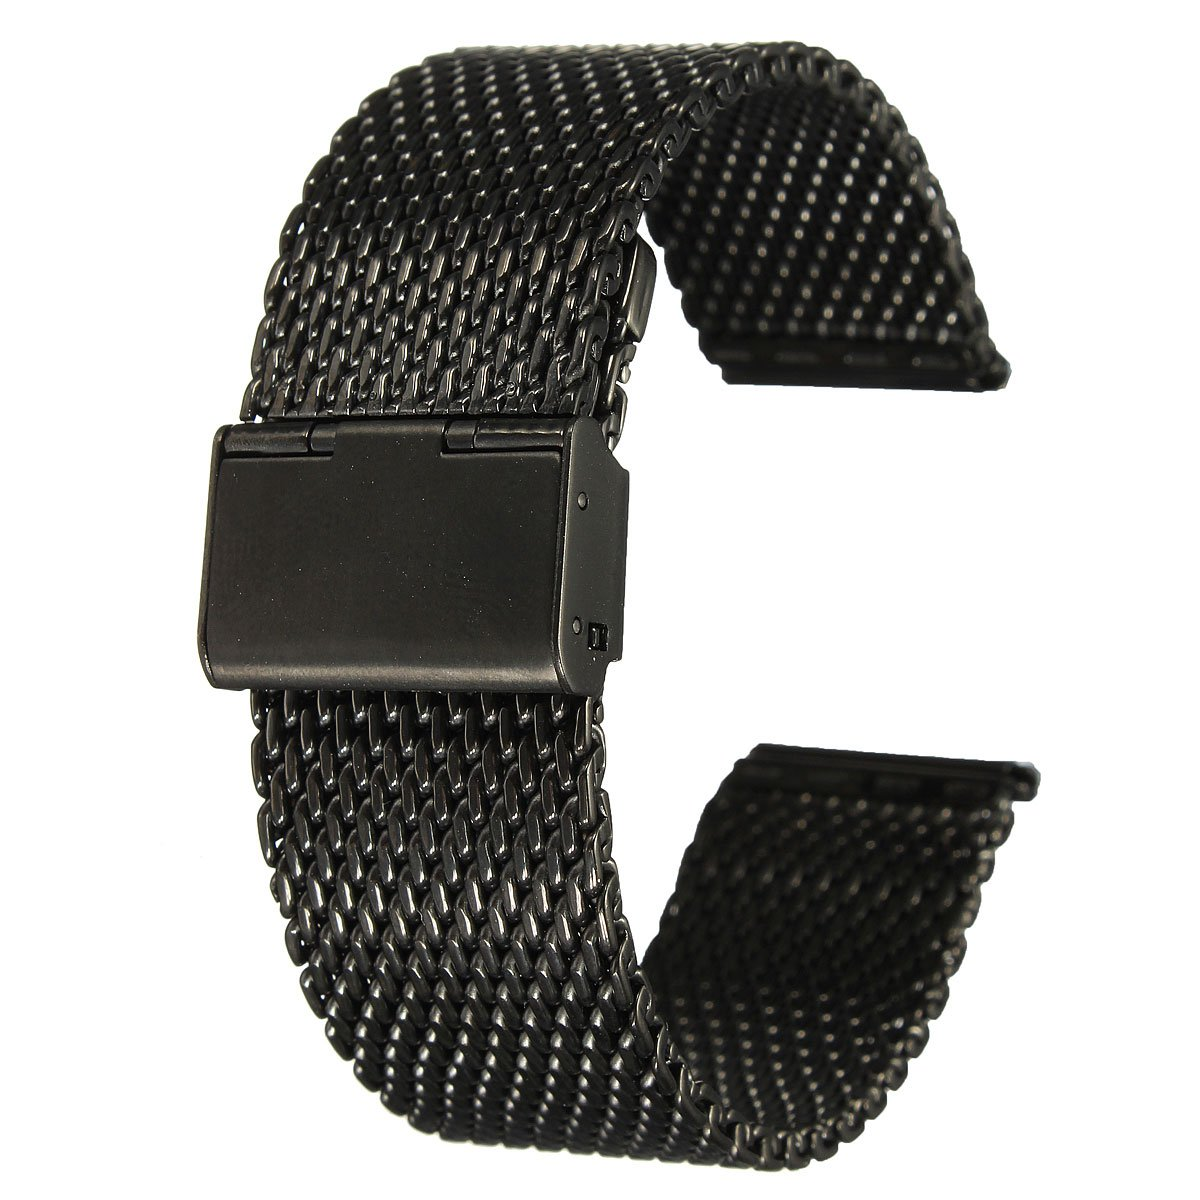 18mm Unisex Stainless Steel Chainmail Watch Strap Band New Year Gift black